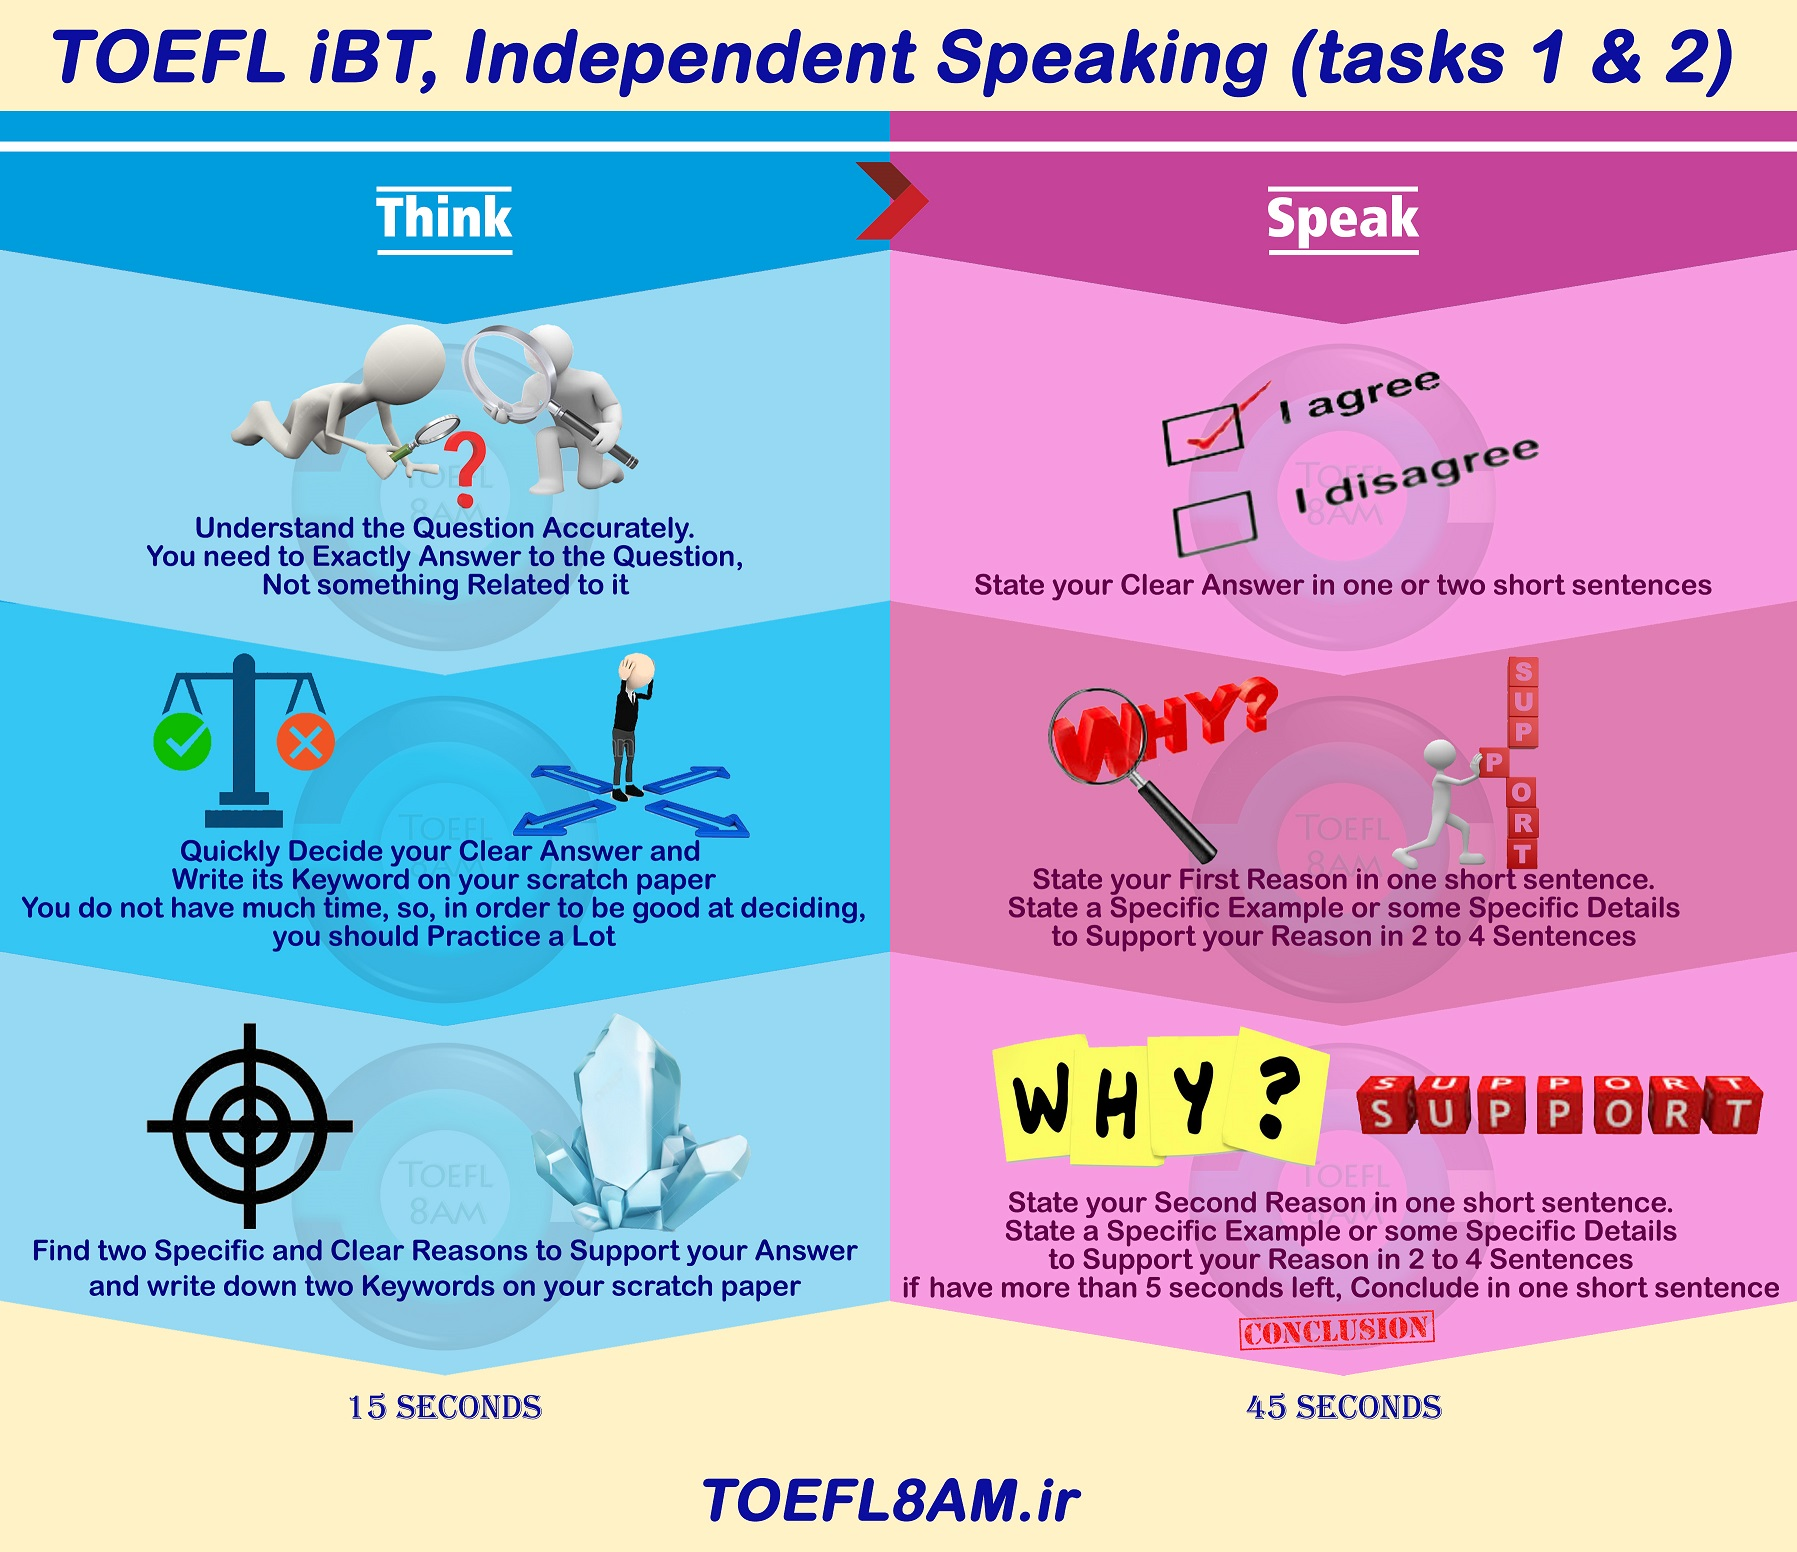 success in TOEFL iBT Speaking tasks 1,2